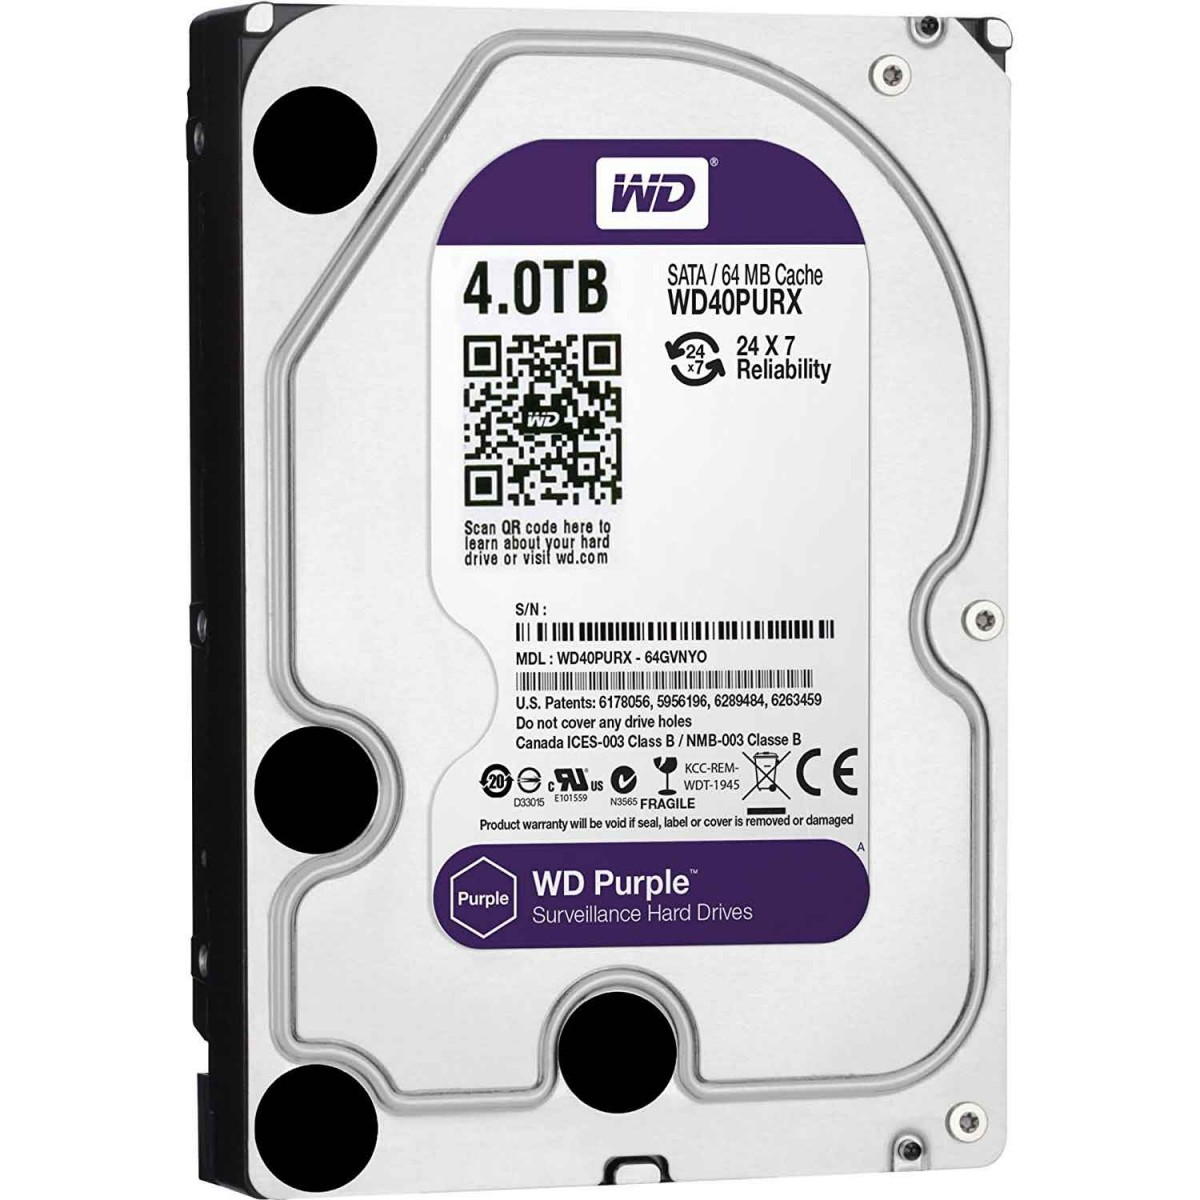 WD 4TB Purple Surveillance Hard Drive